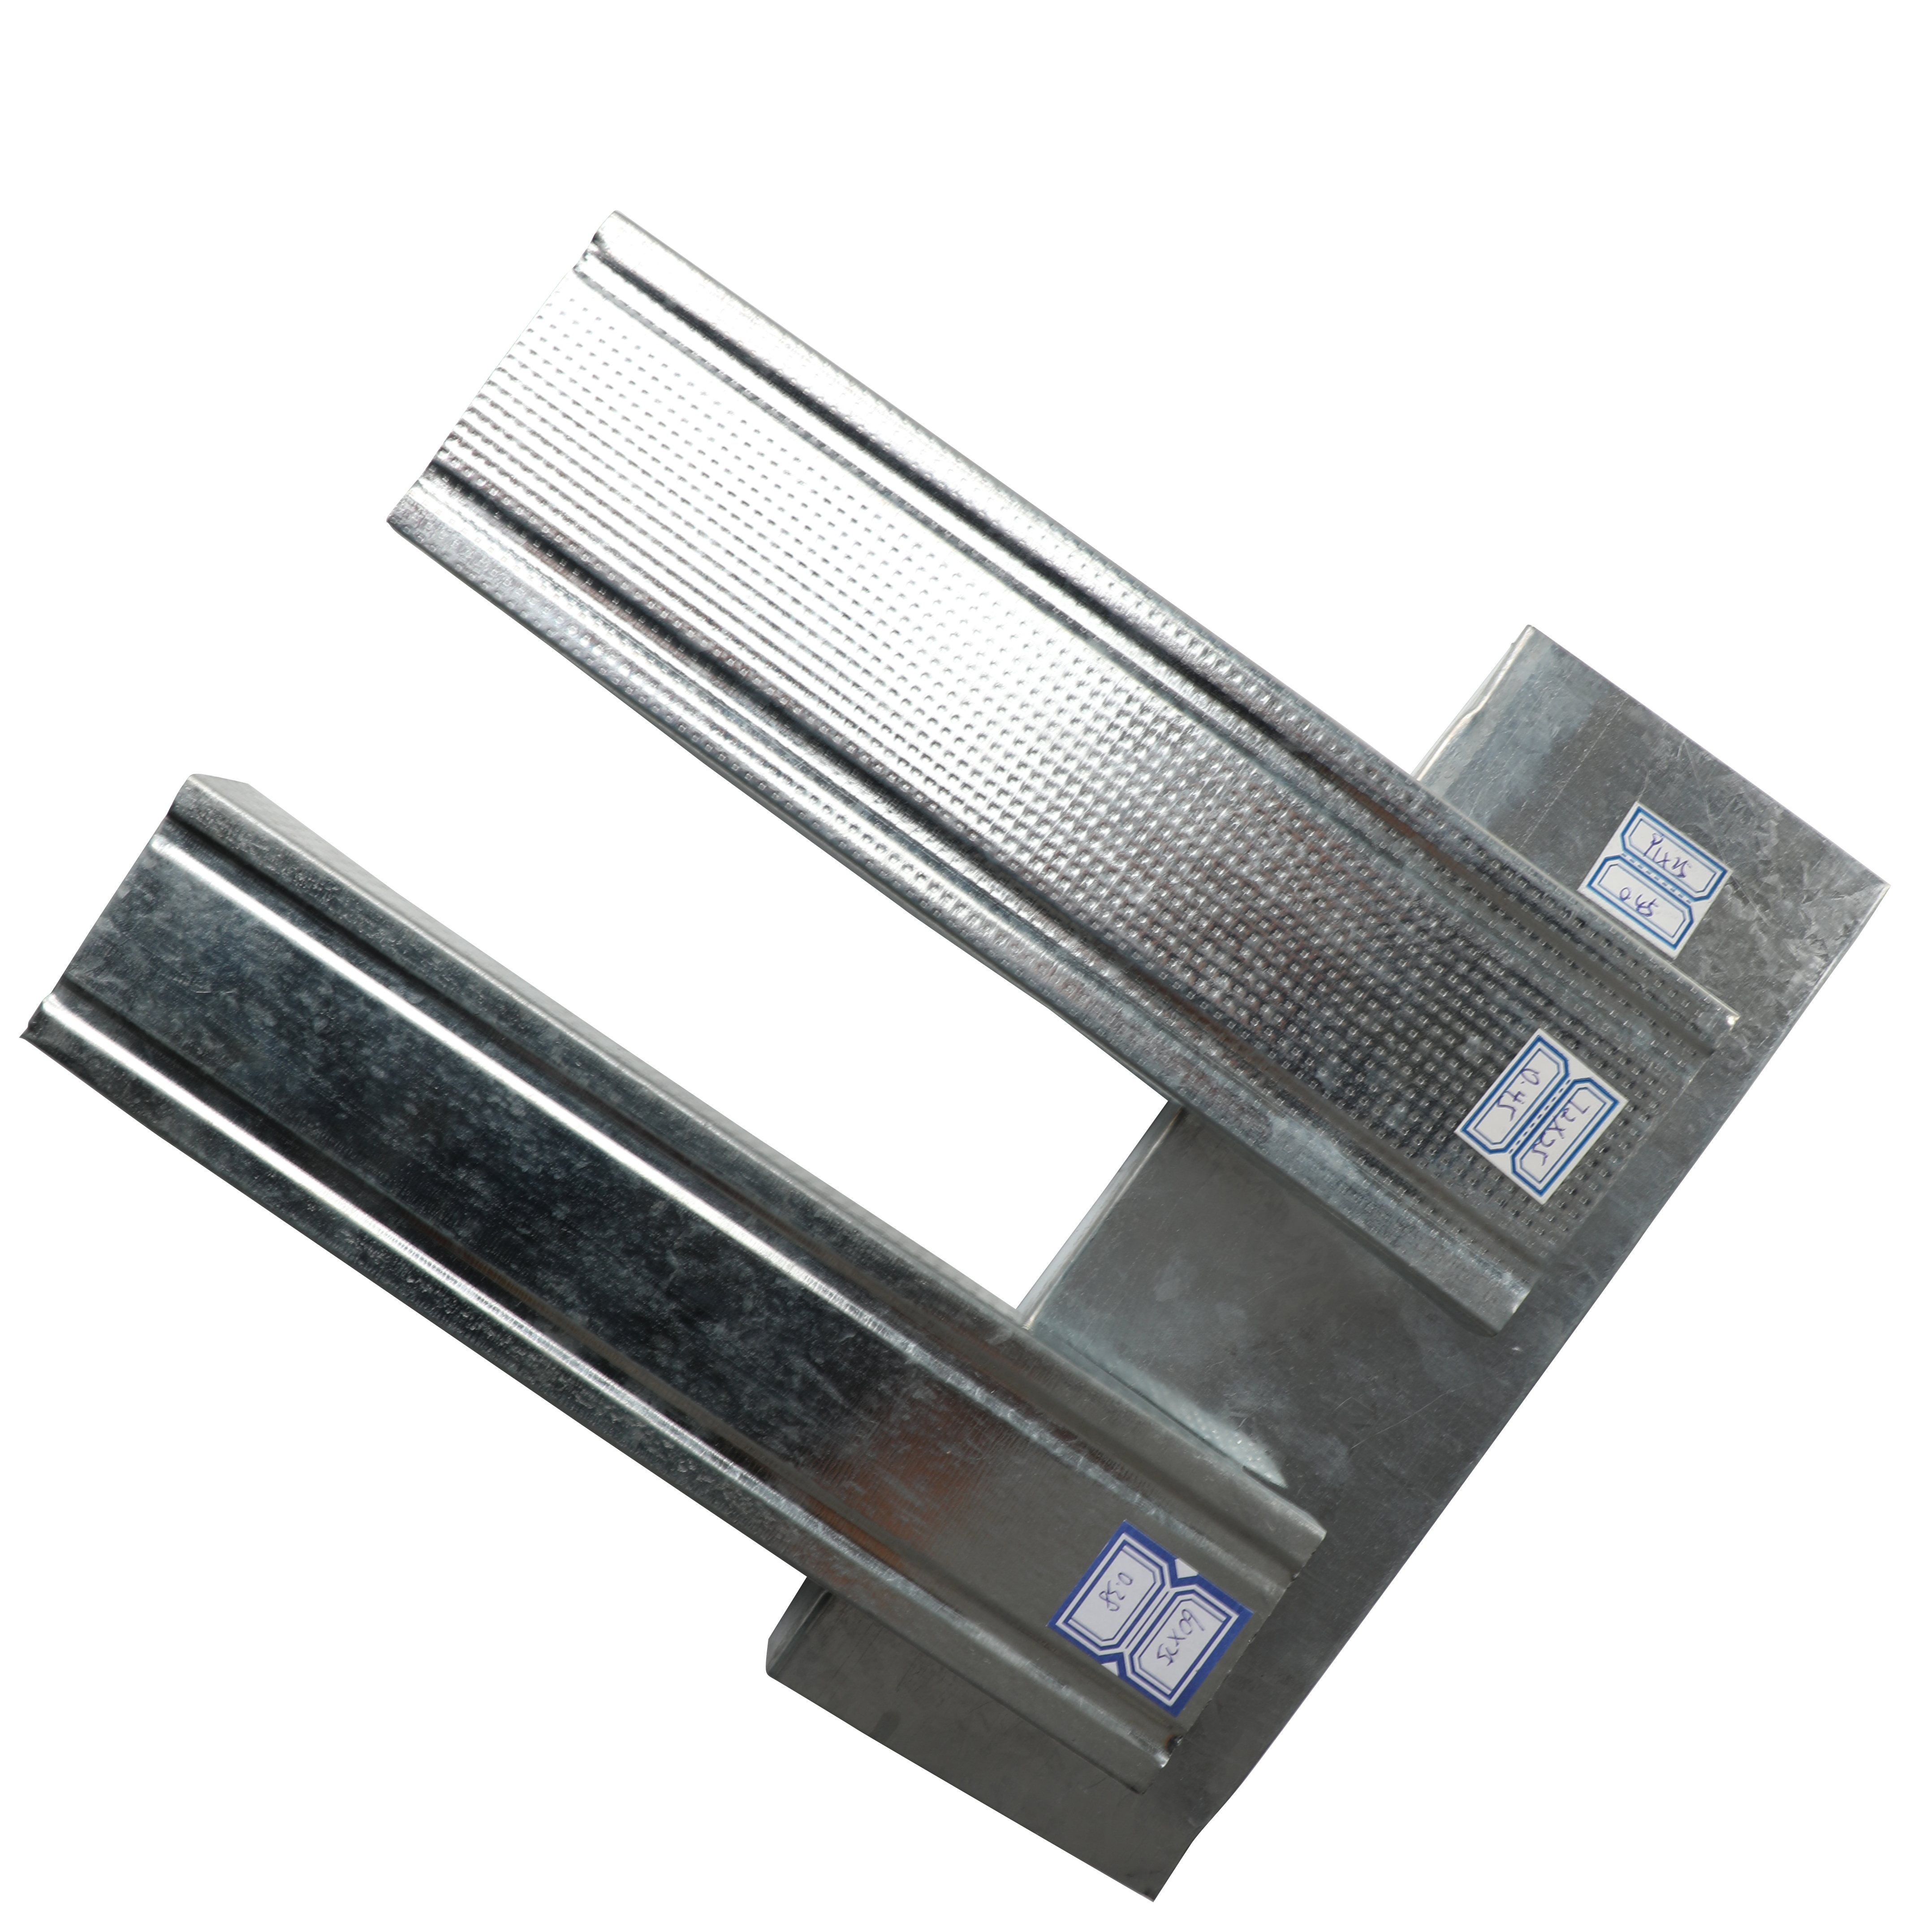 Drop Down Ceiling Grid Interlude Led Light Reinforce 2X4 T Bar Low Price Wholesale Suspension Grids And Tiles Sonata